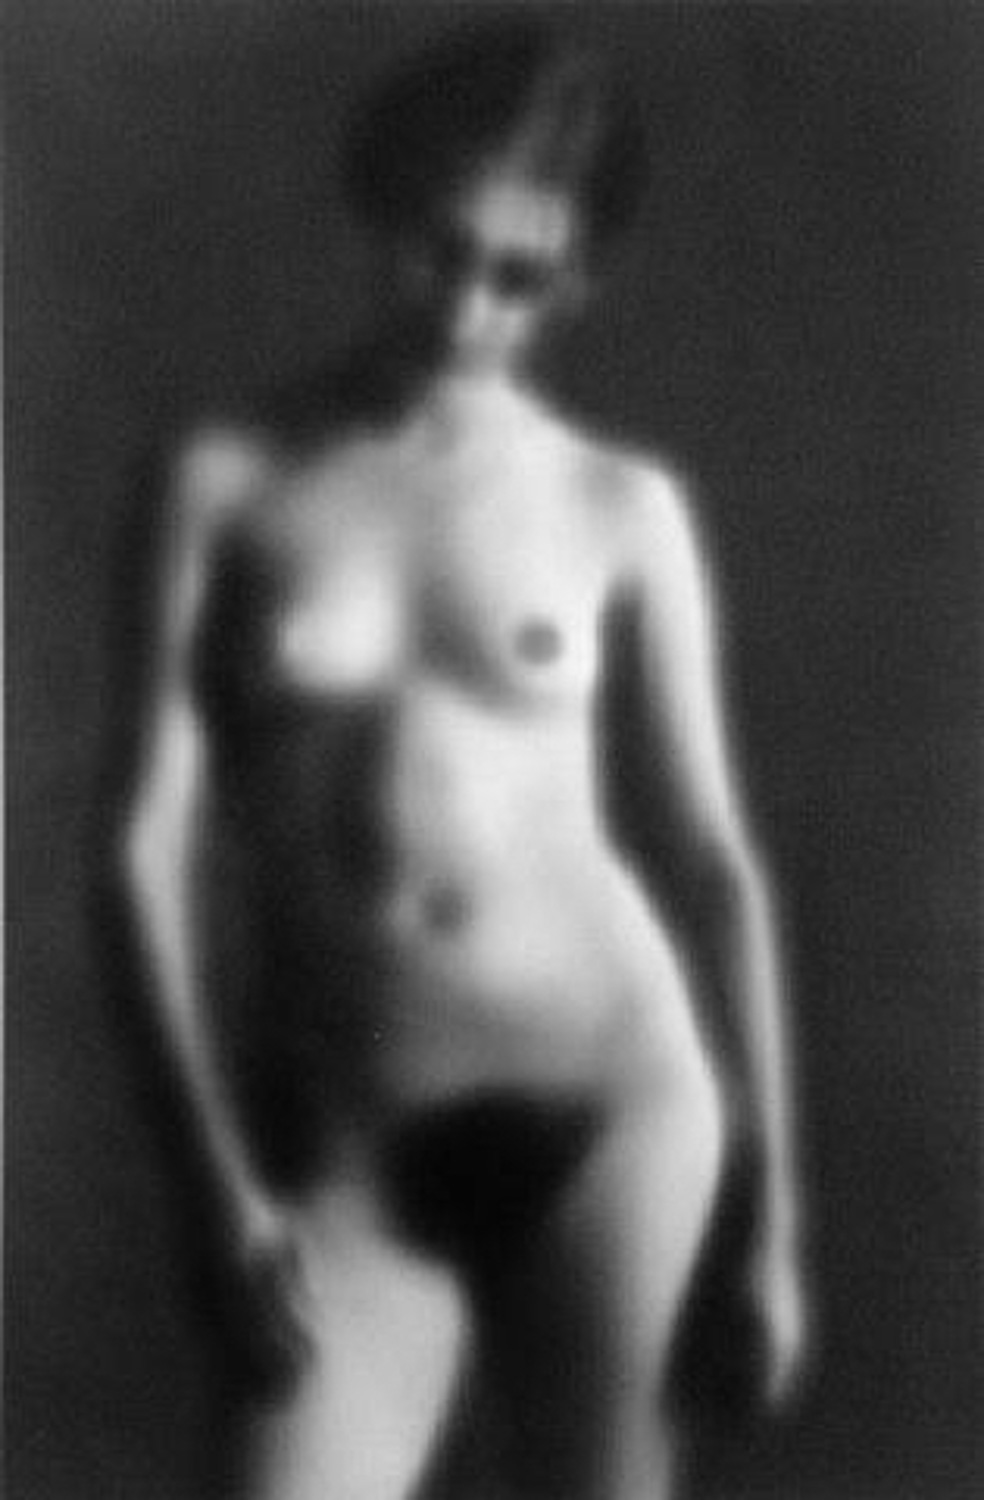 GENRE: NUDES AND THE BODY